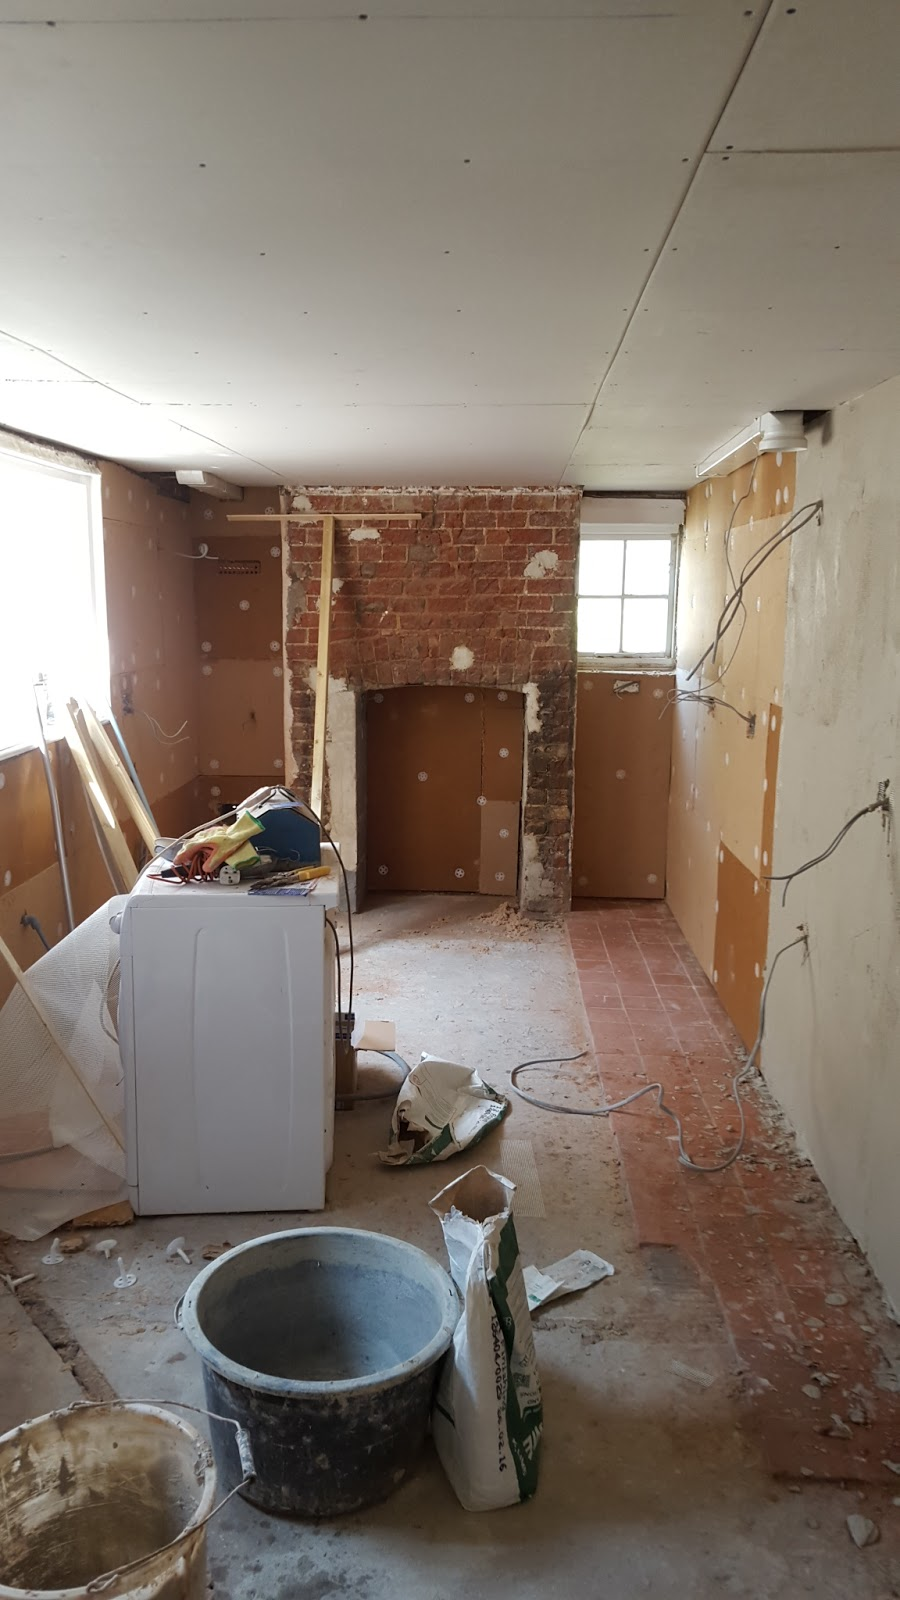 At This Home In Deal, Kent The Walls Have Been Repaired And Plastered Using  Traditional Lime Plasters. The Plasterbord Ceiling Was Plastered Using The  ...